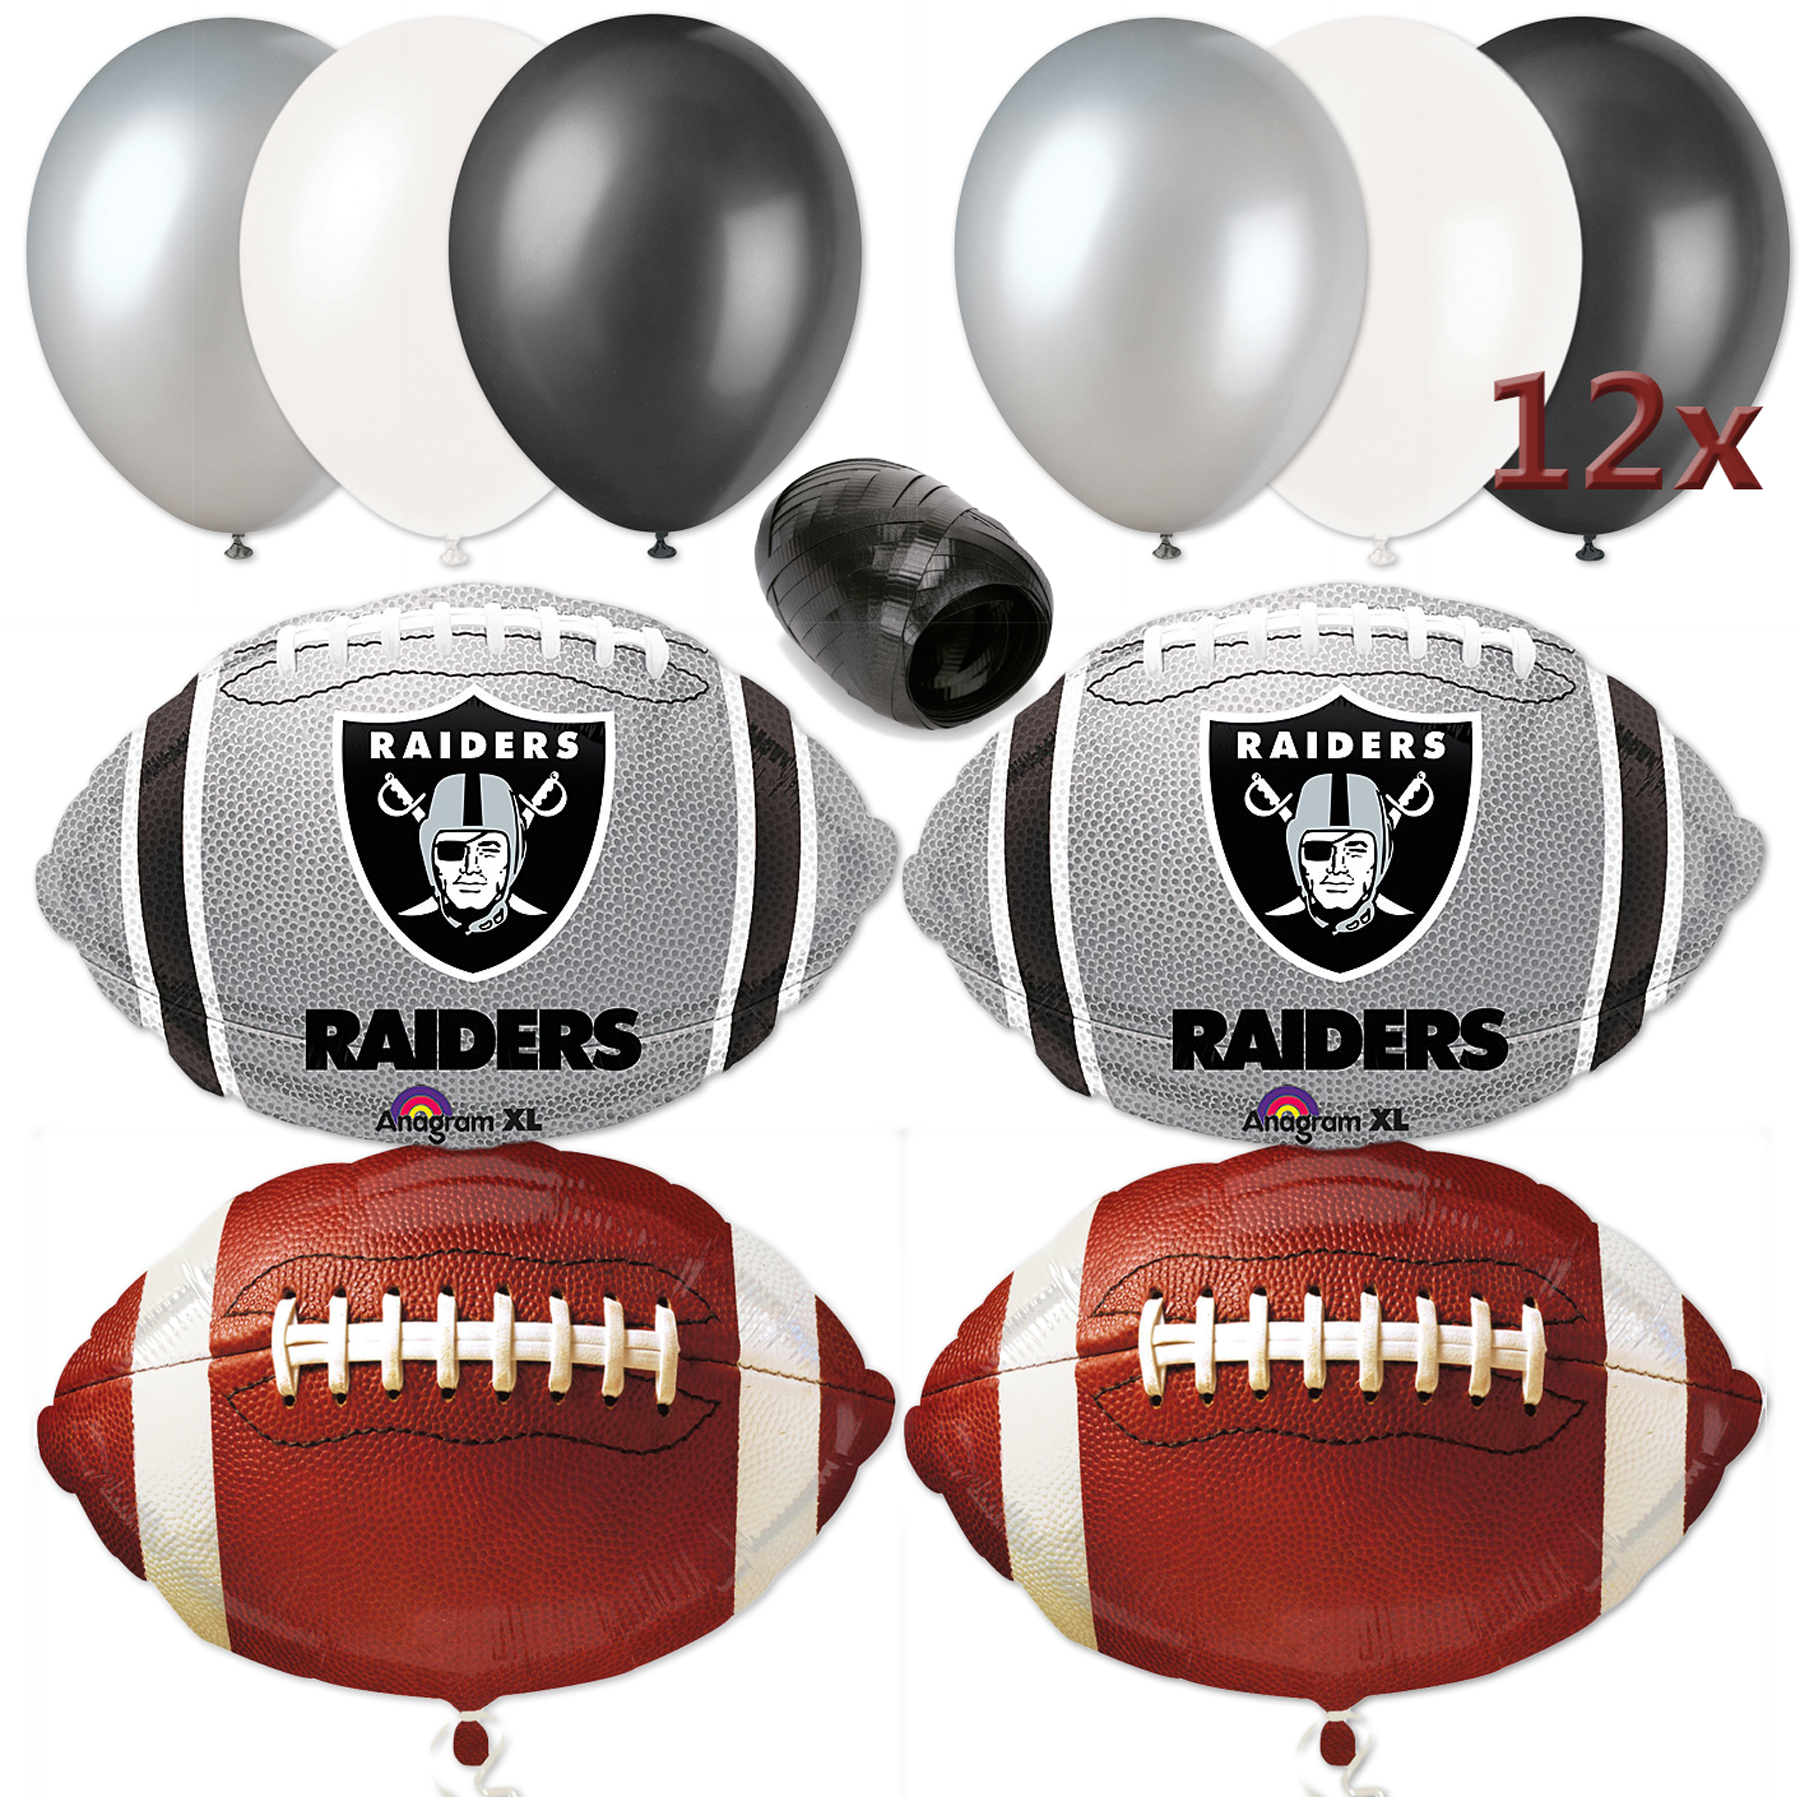 Oakland Raiders NFL Football Decorating Party 17pc Balloon Pack Grey Black White